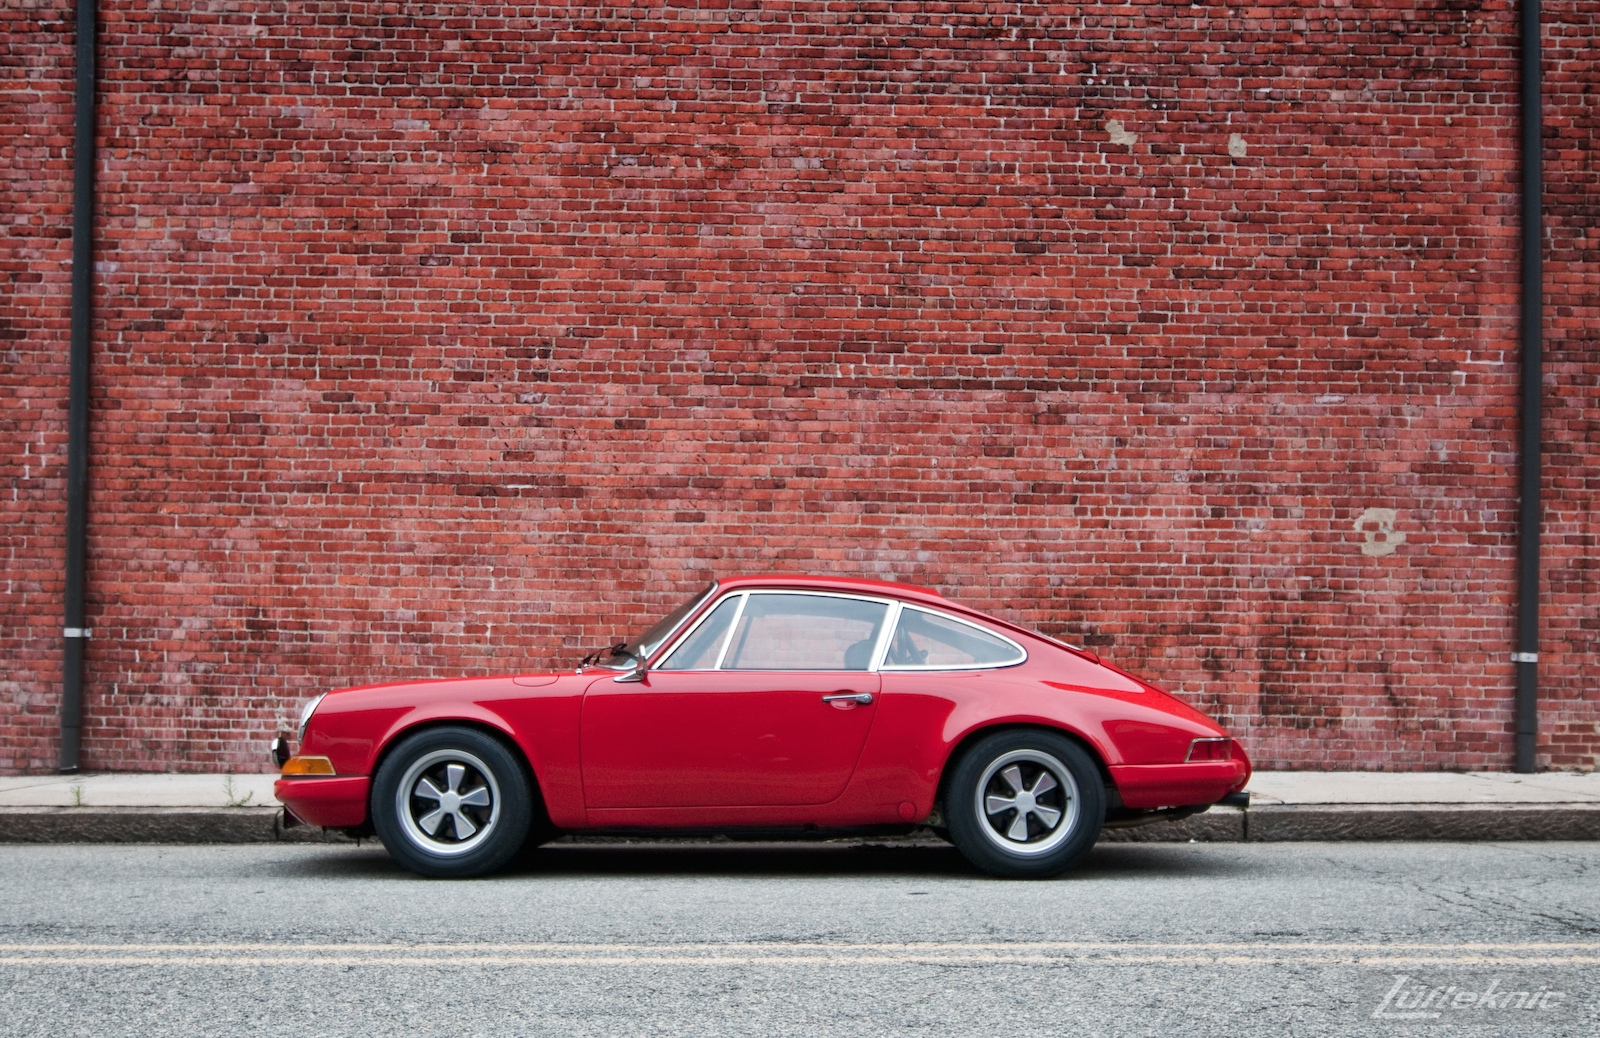 A red 911 profiled on a red brick wall.